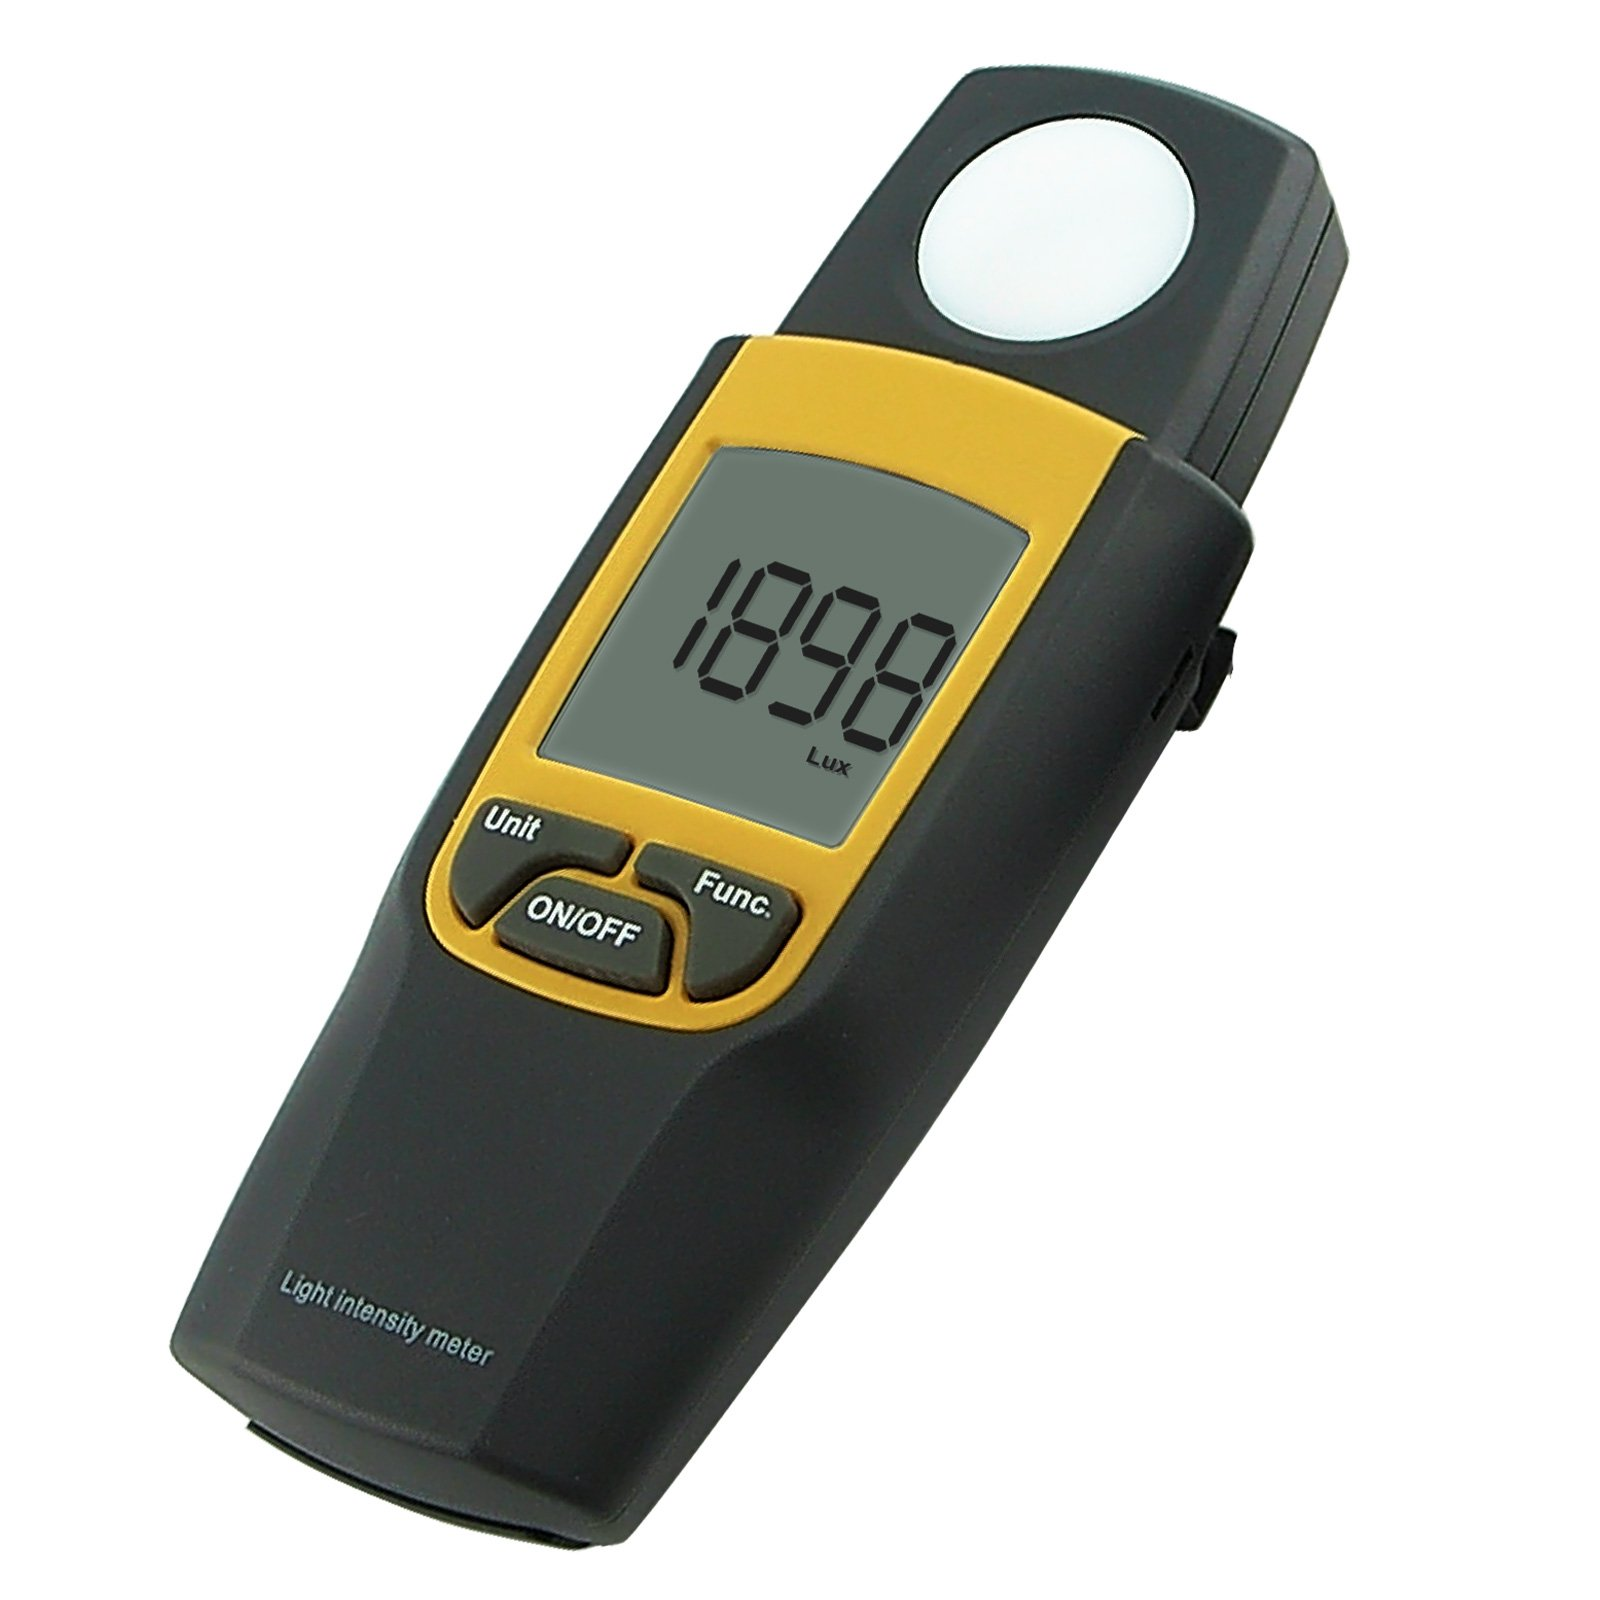 Digital Lux/Light Level Meter 0~30000 Lux Luminometer Illuminance Meter, FTC with Max Min Hold 2 Parameters Measurement Large Display by Gain Express